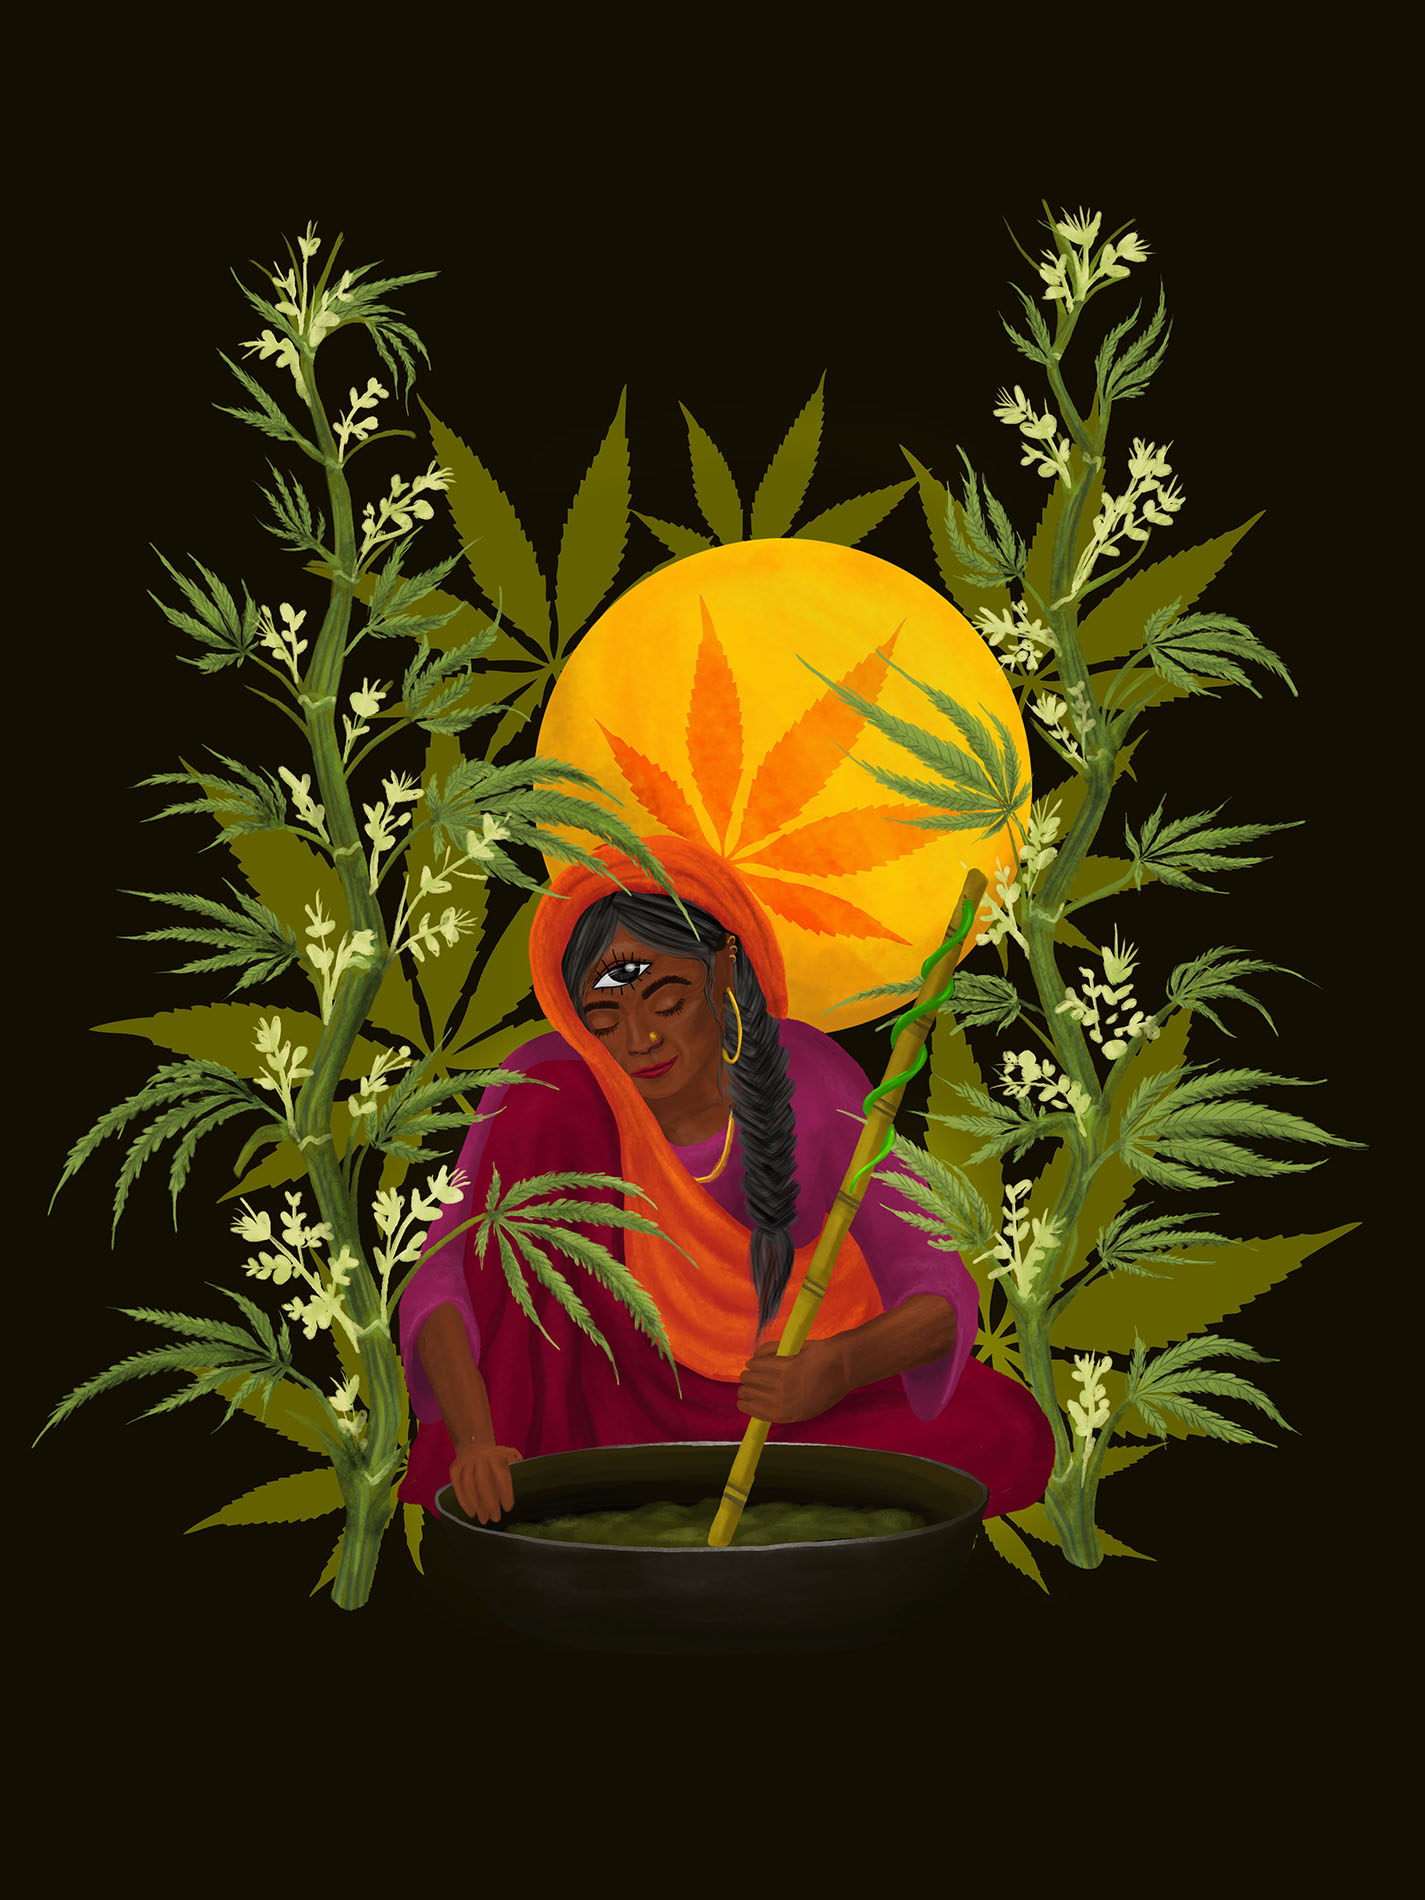 Illustration of an Indian woman preparing the cannabis drink Bhang